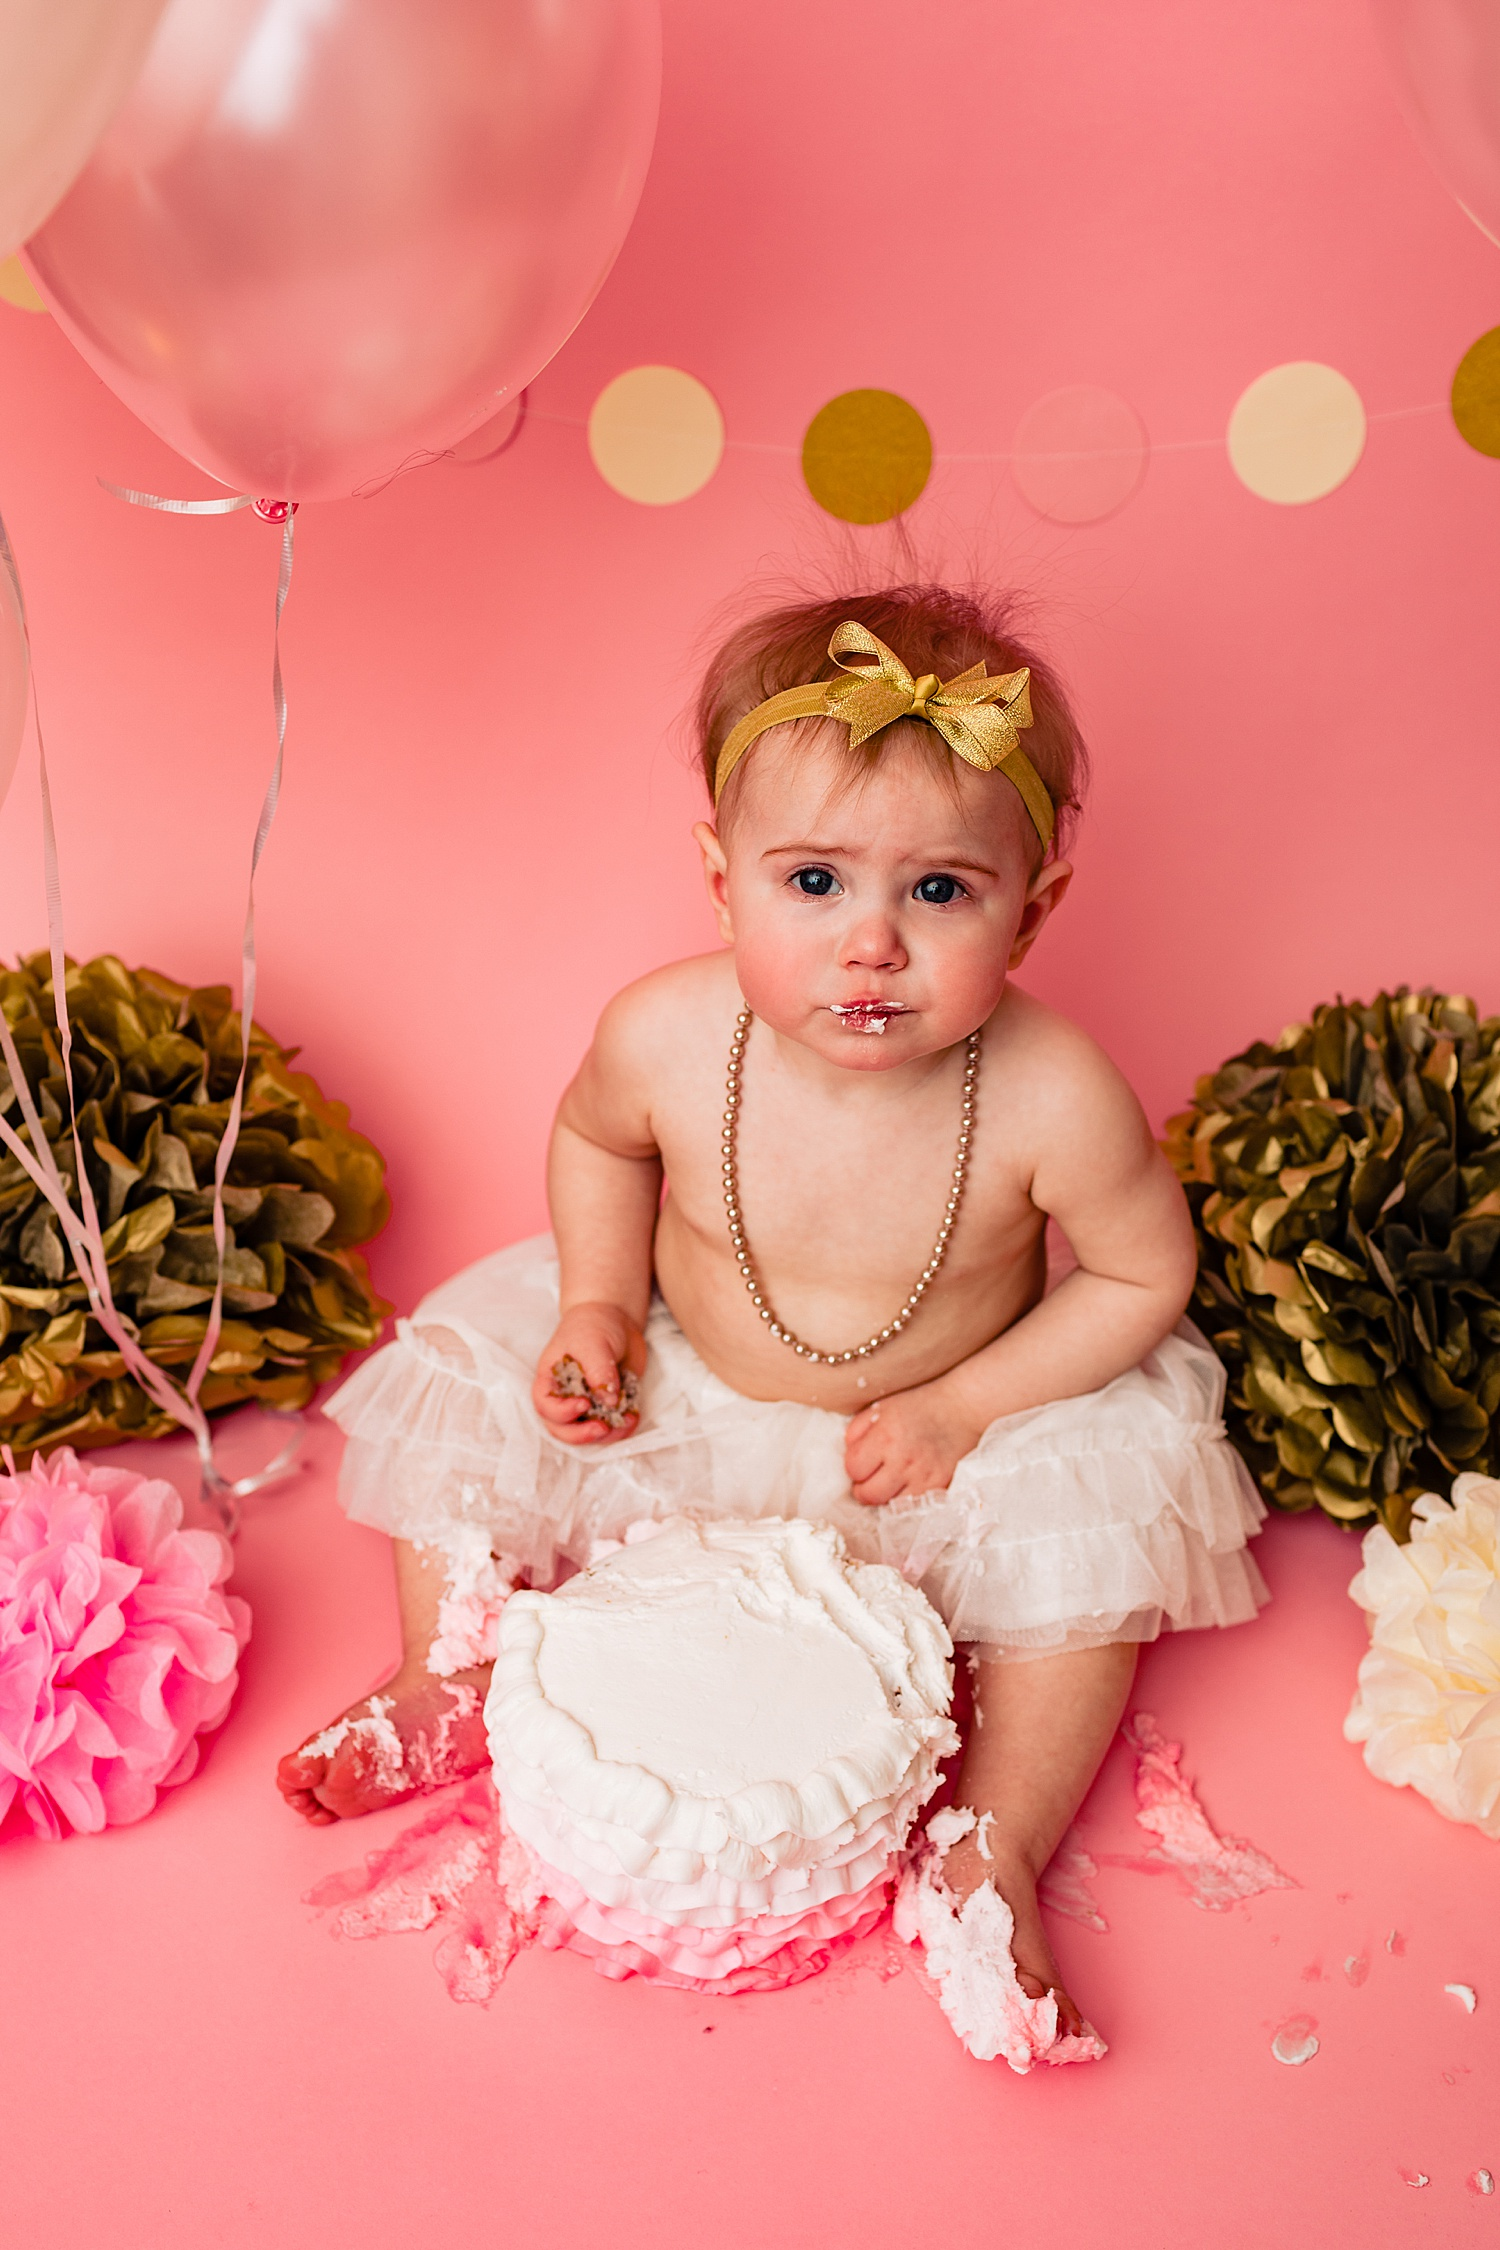 Berks County Pennsylvania one year birthday cake smash photographer photoshoot